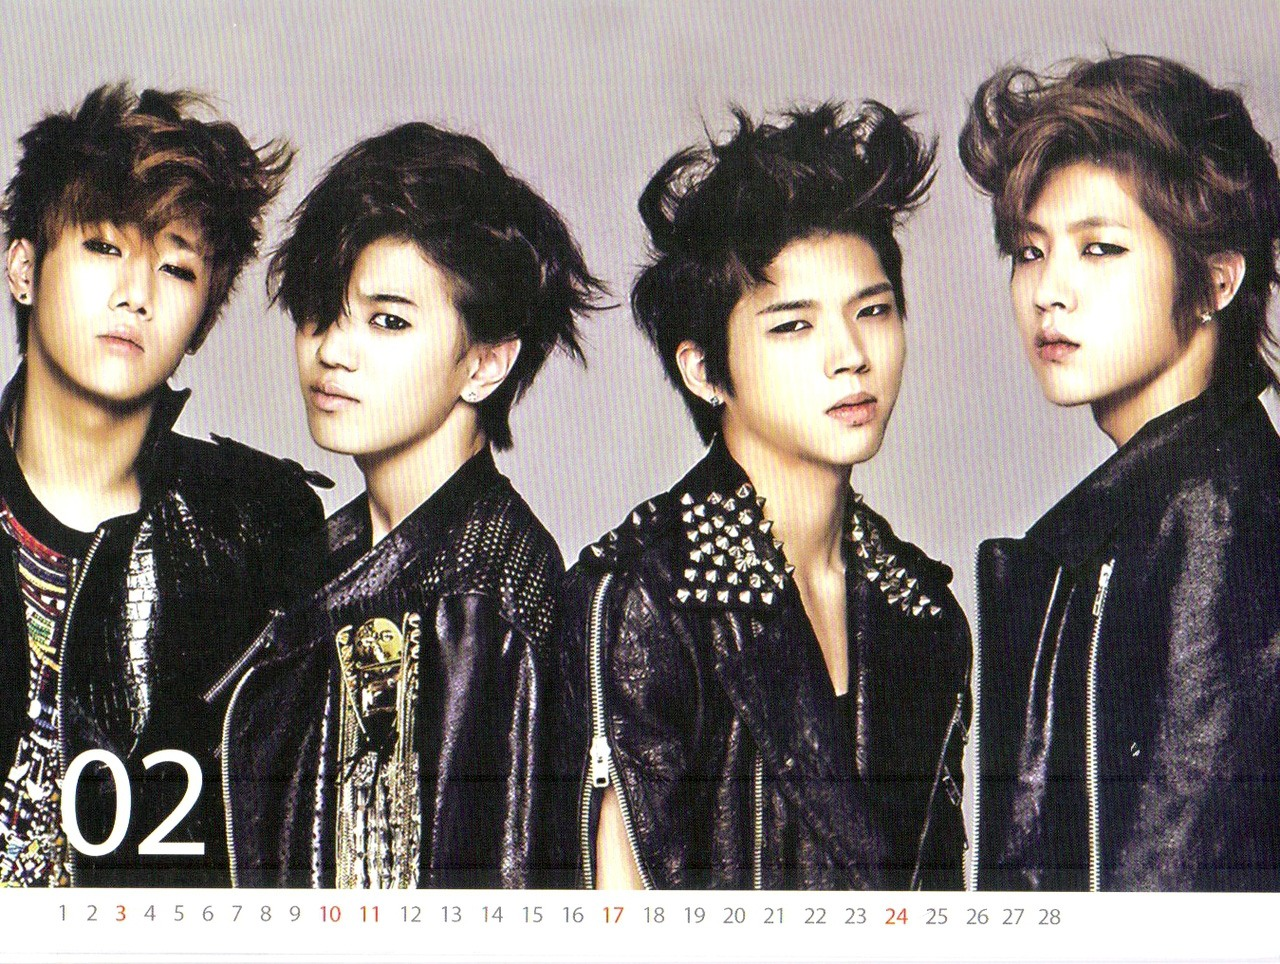 Infinite 인피니트 images Infinite 2013 Japan Calendar wallpaper